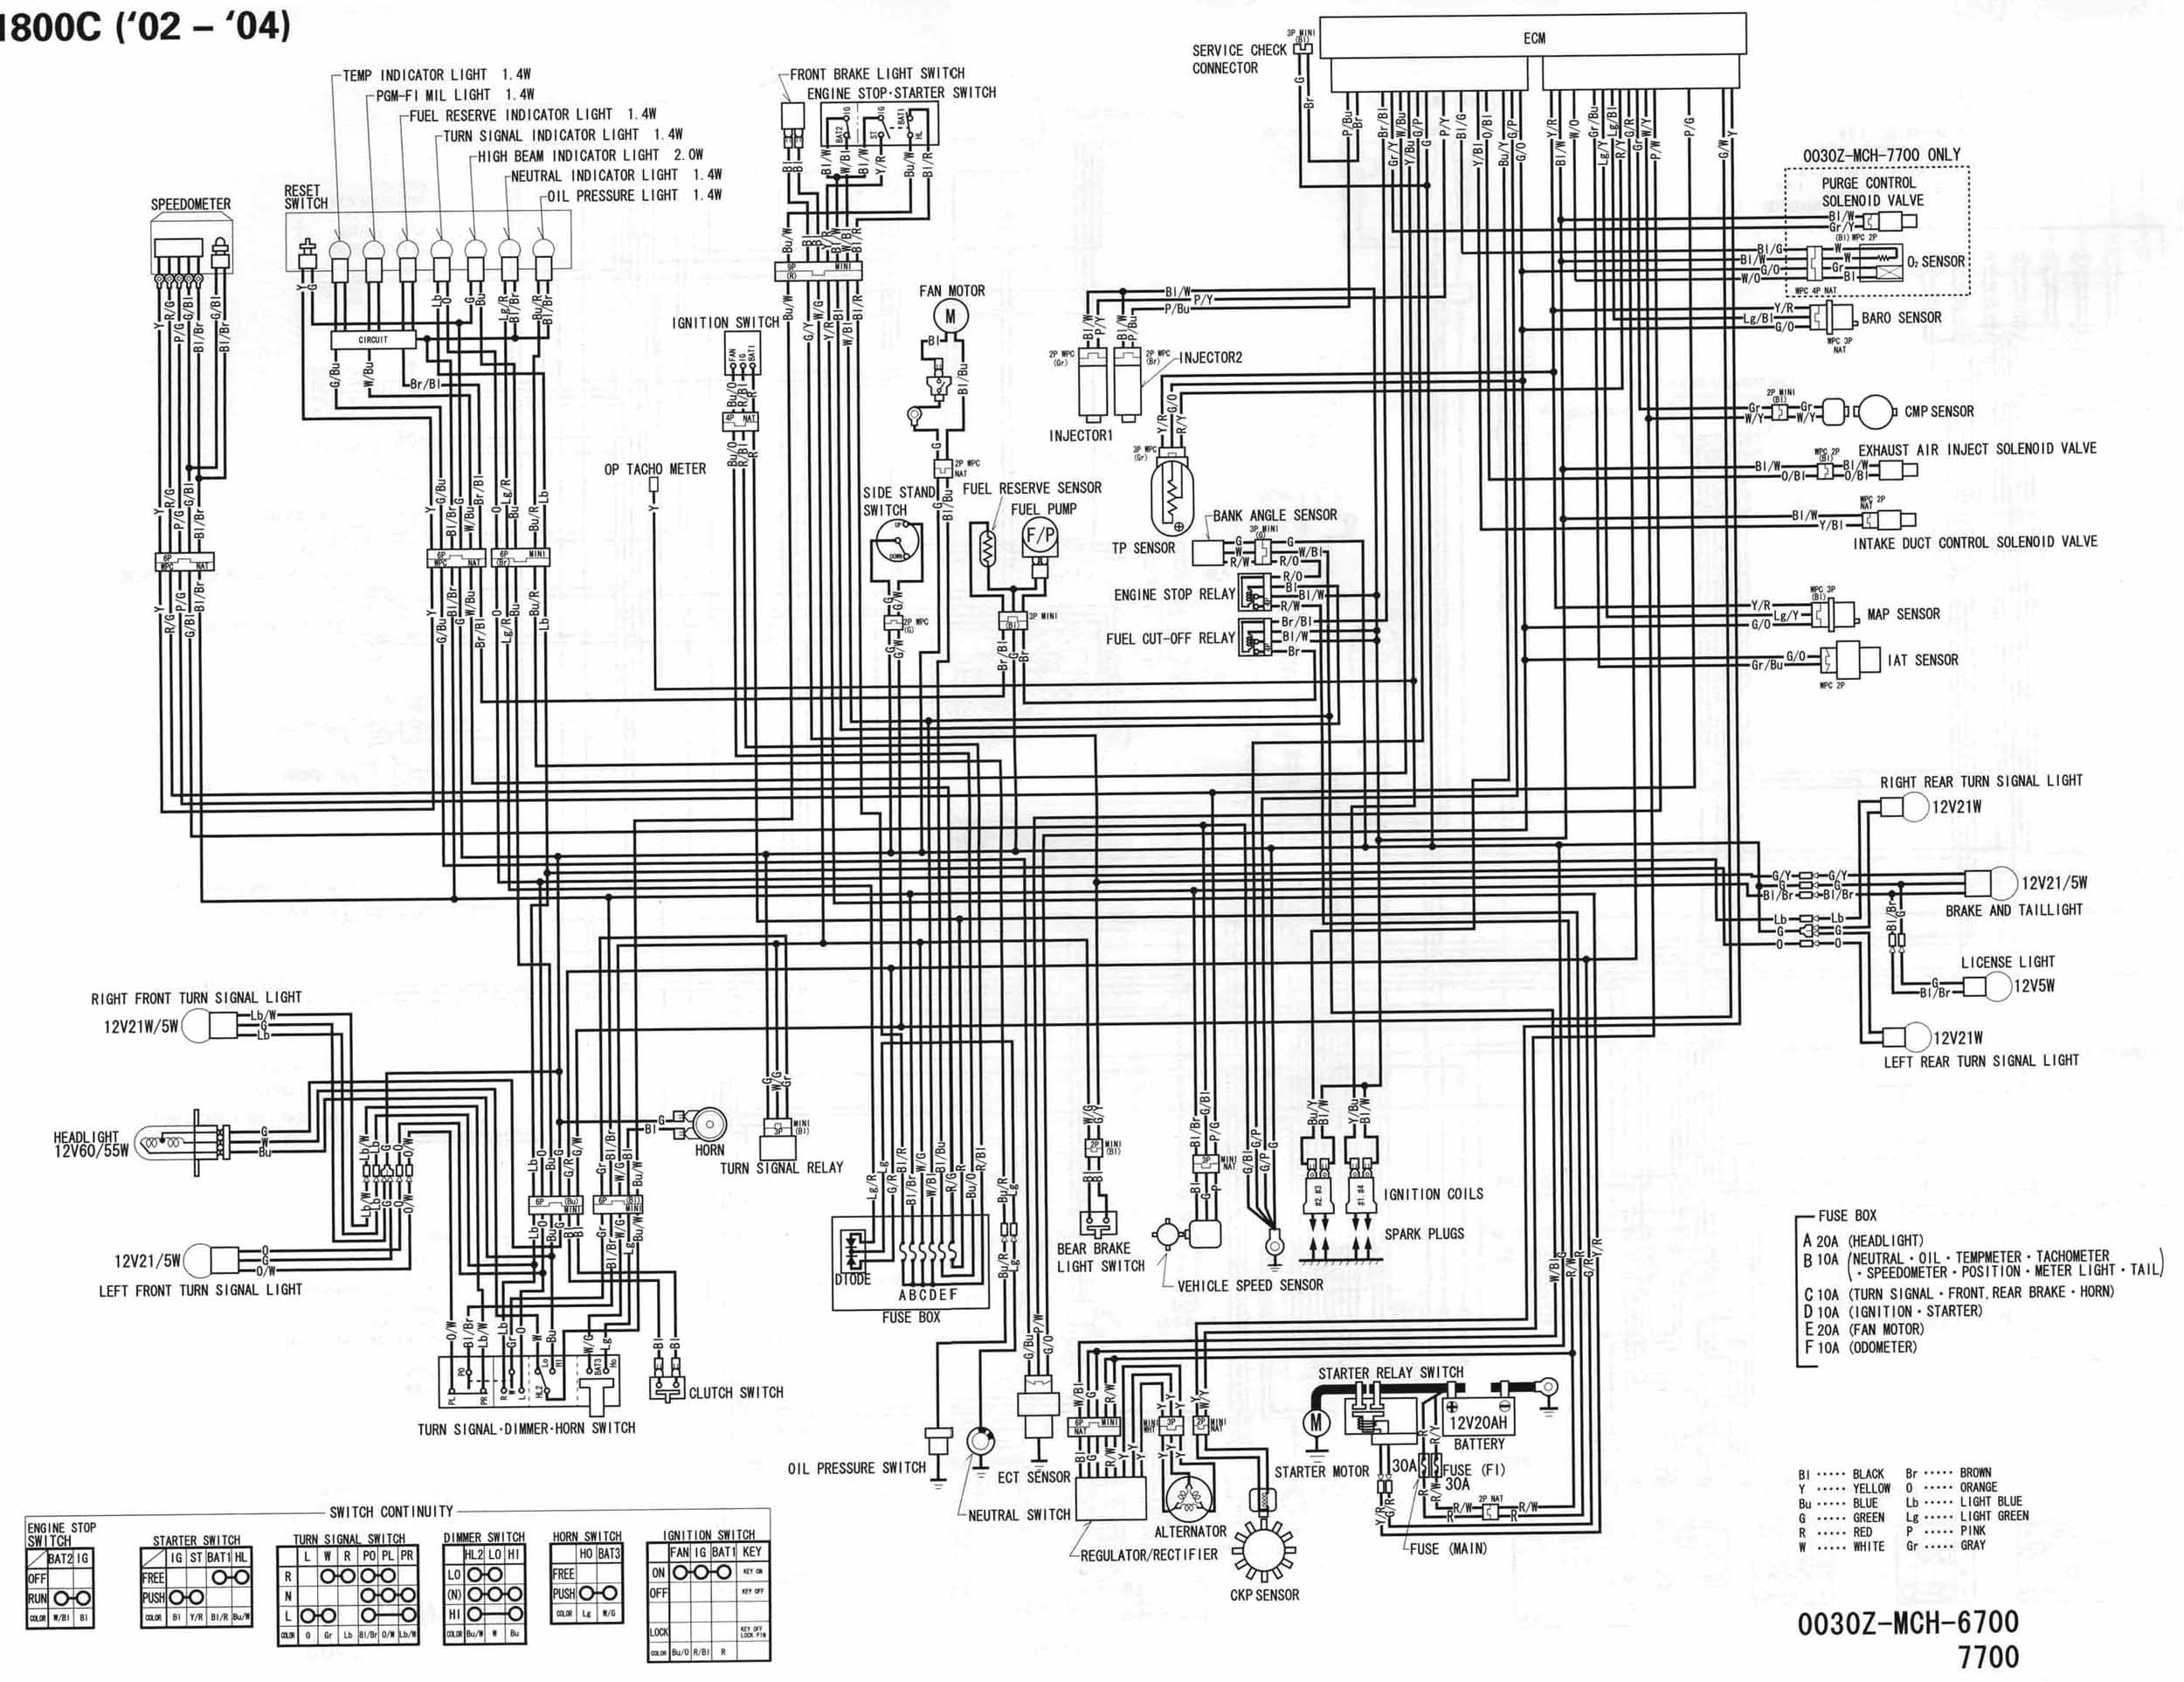 02 04_VTX1800_C_schematic motorcycle wire schematics bareass choppers motorcycle tech pages Home Electrical Wiring Diagrams at panicattacktreatment.co